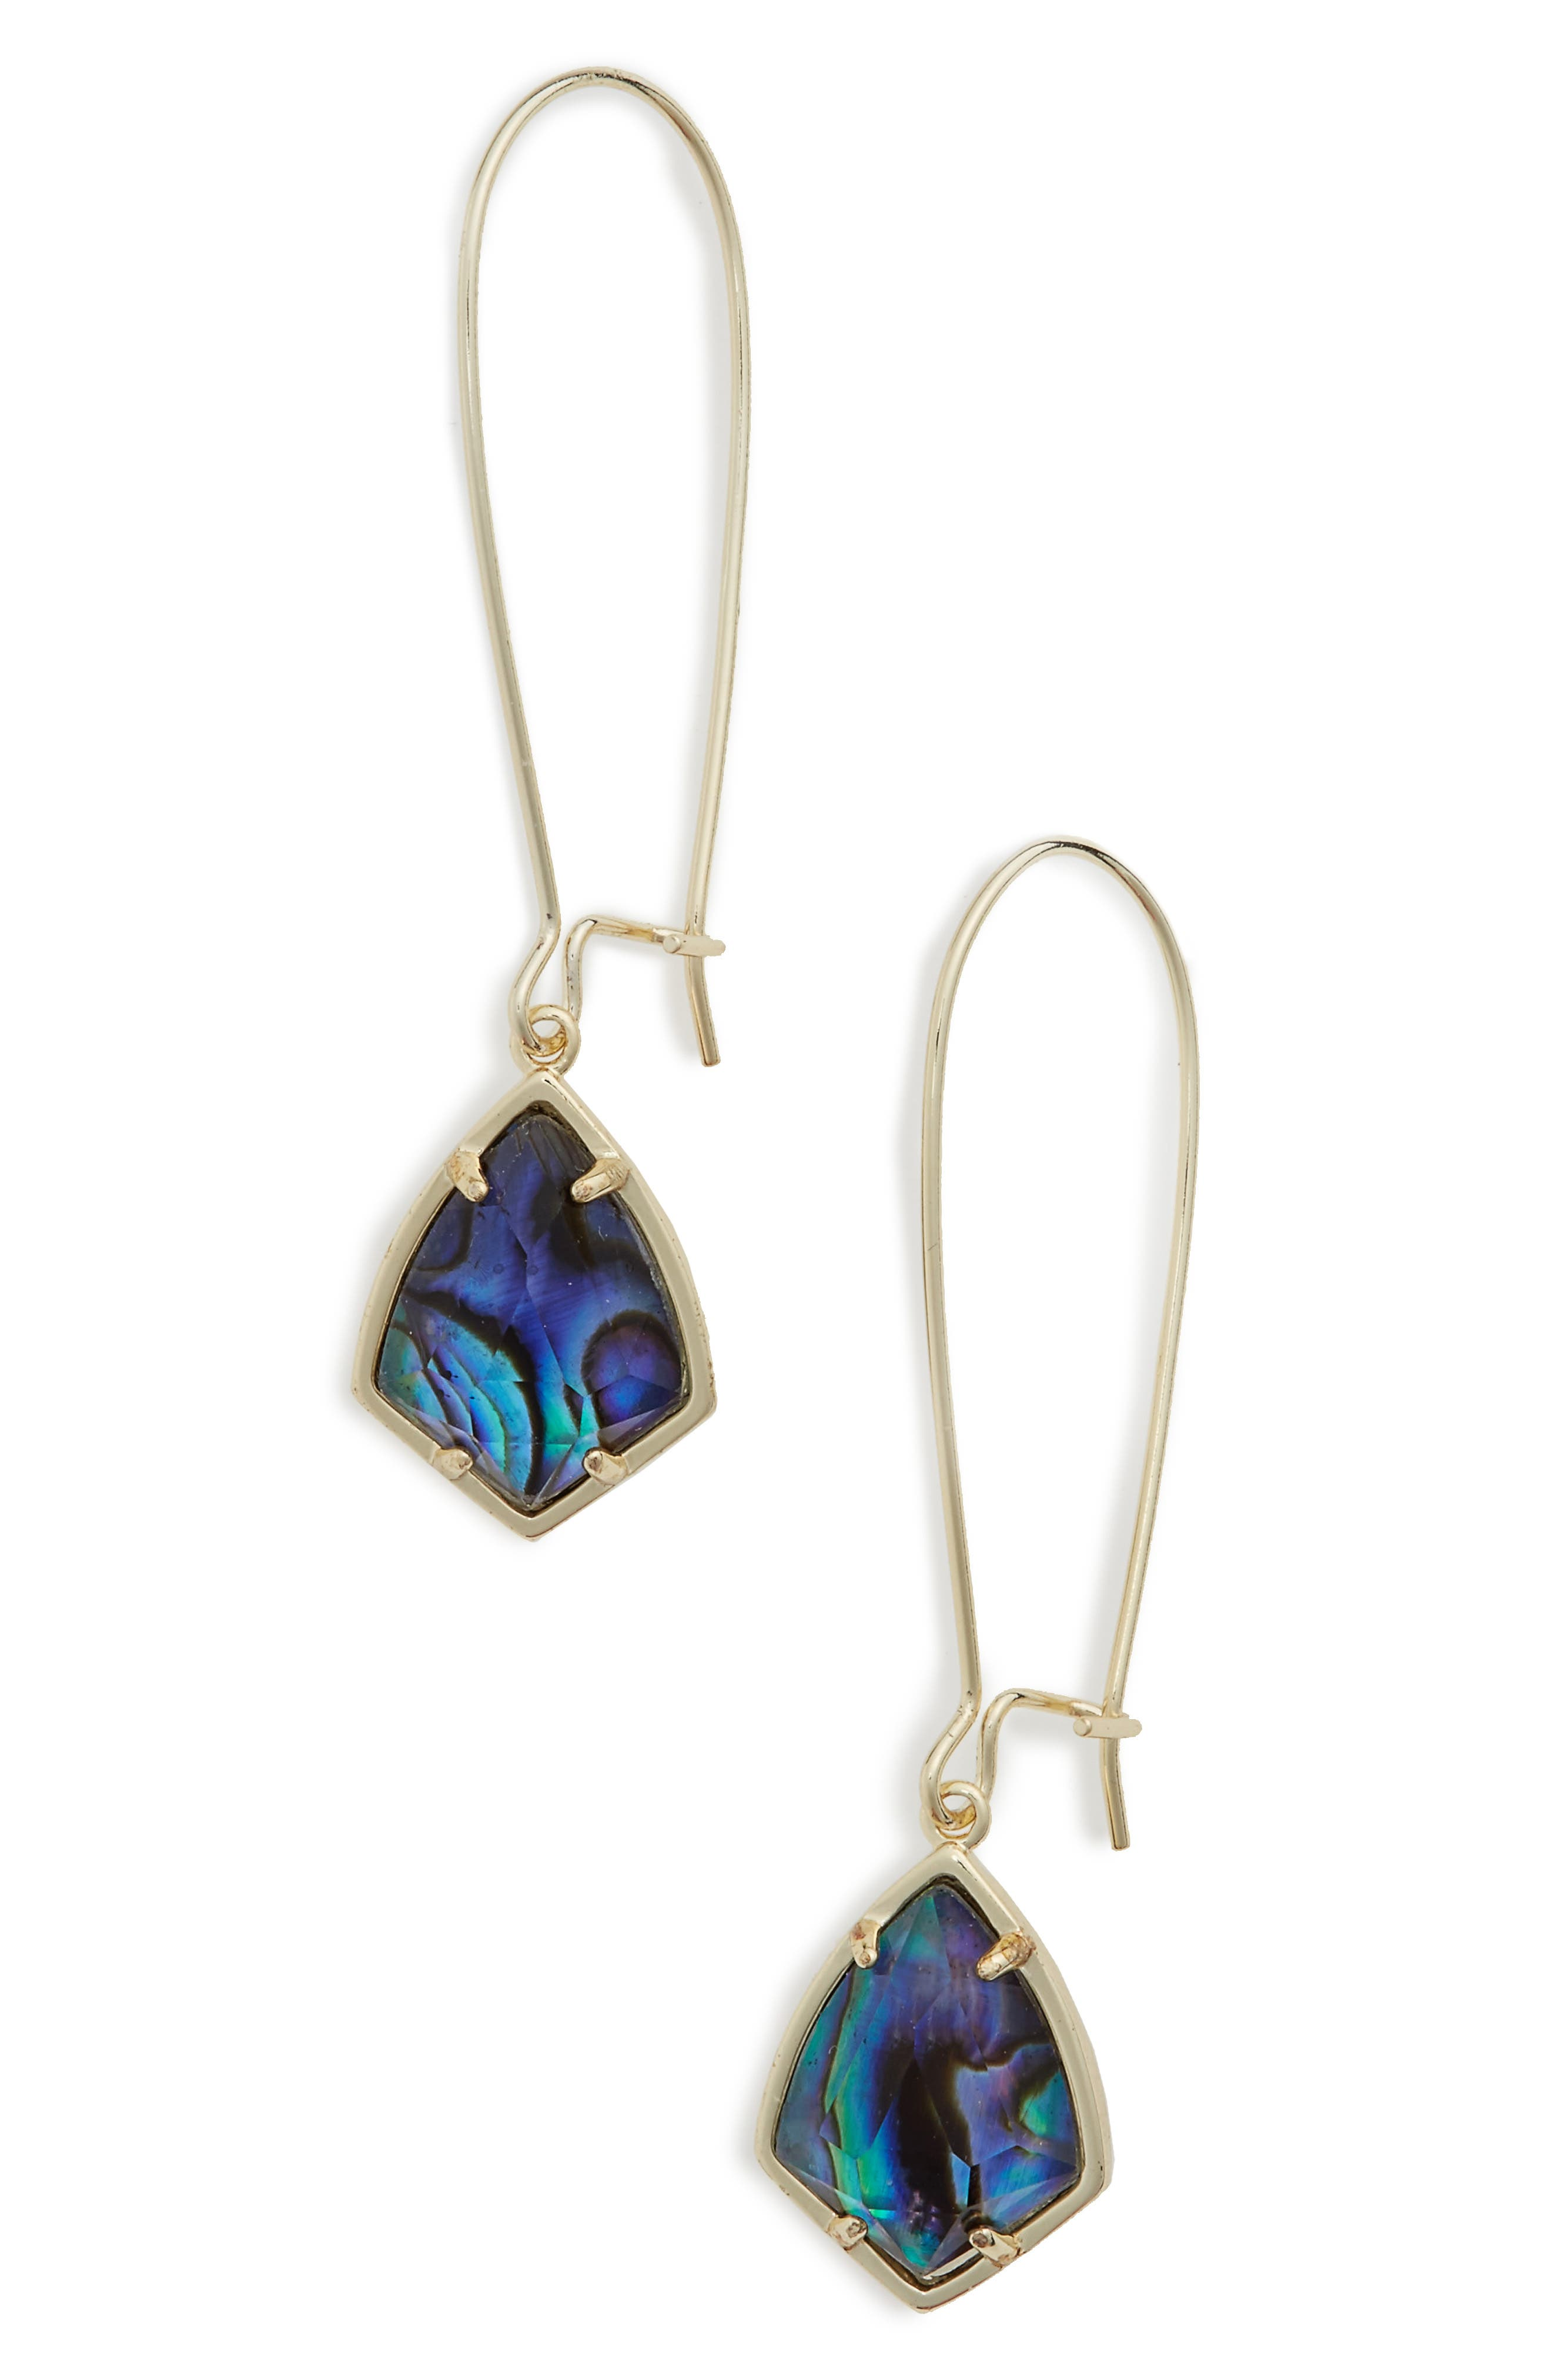 KENDRA SCOTT 'Carrine' Semiprecious Stone Drop Earrings